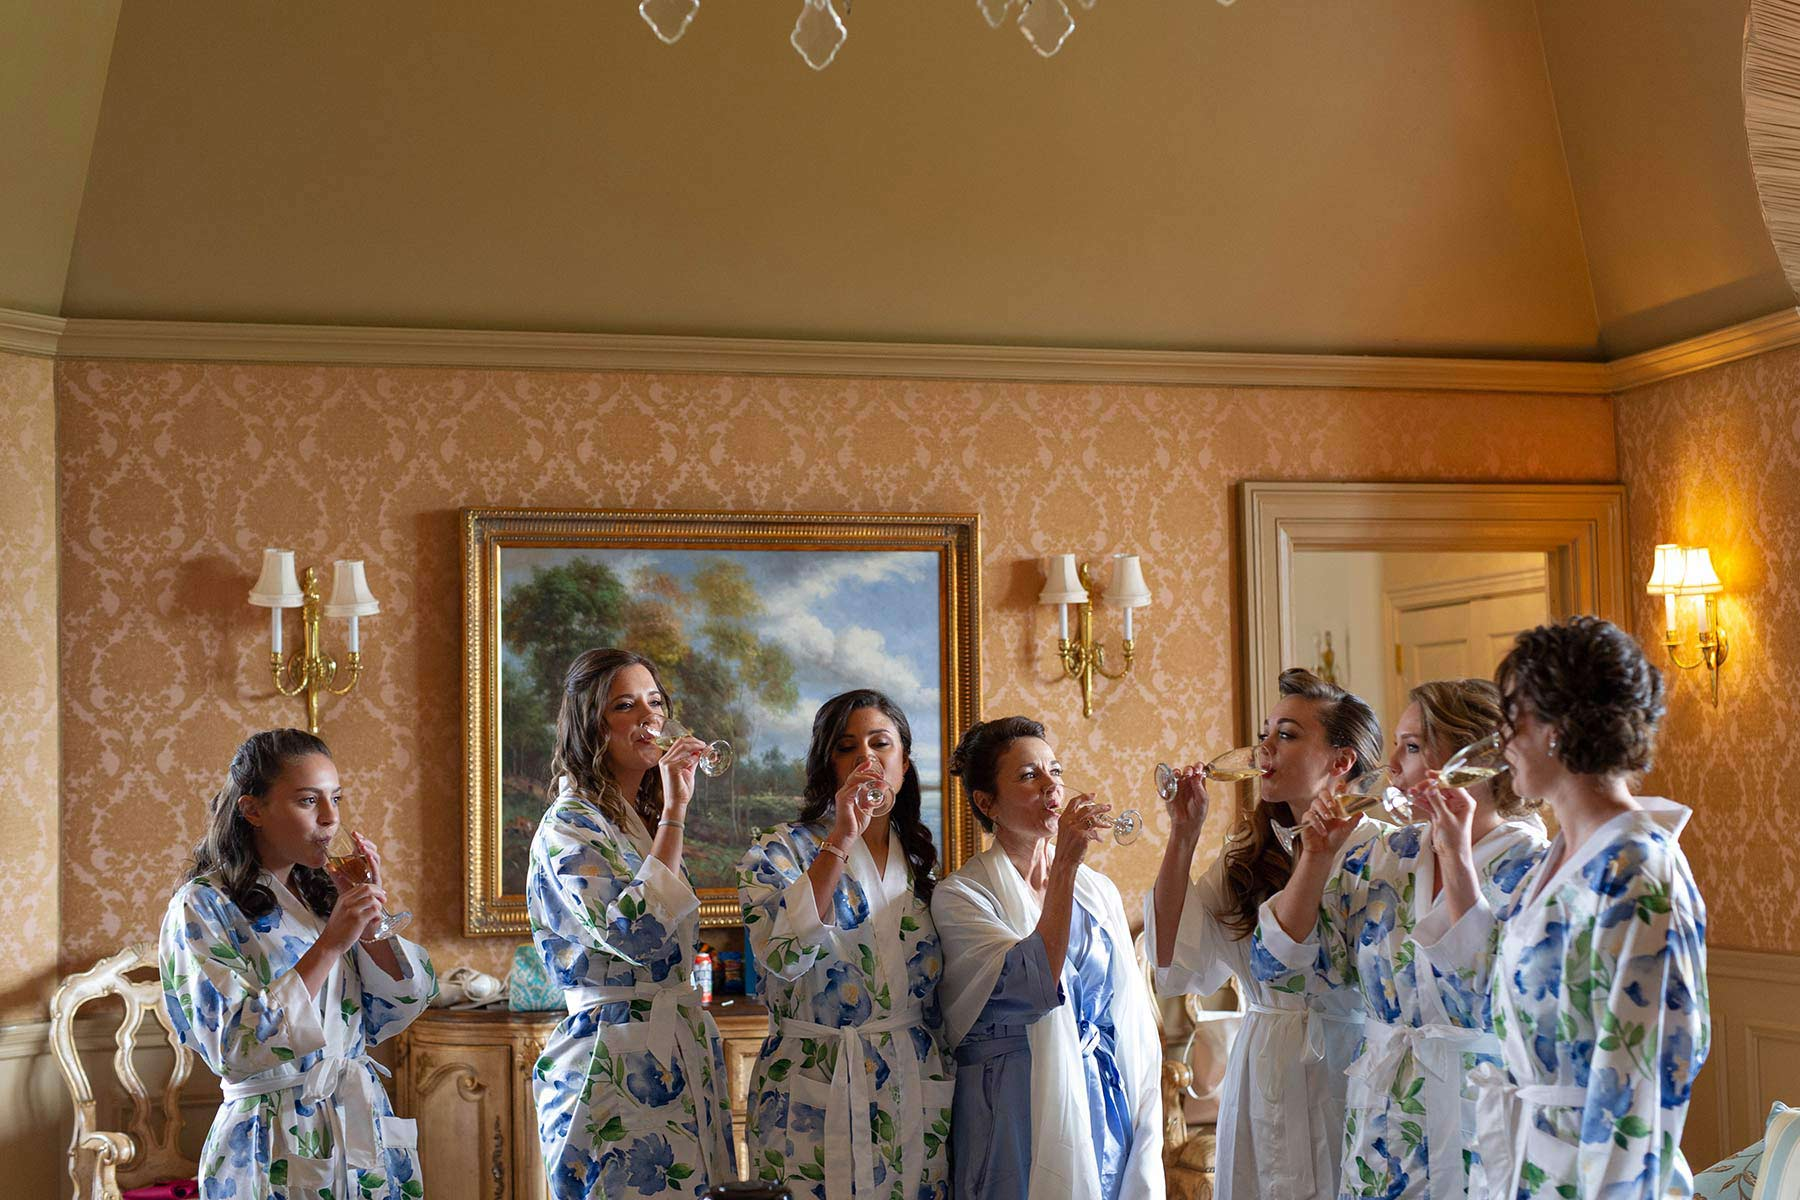 04_Ladies_toast_champagne_in_Oheka_castle.jpg